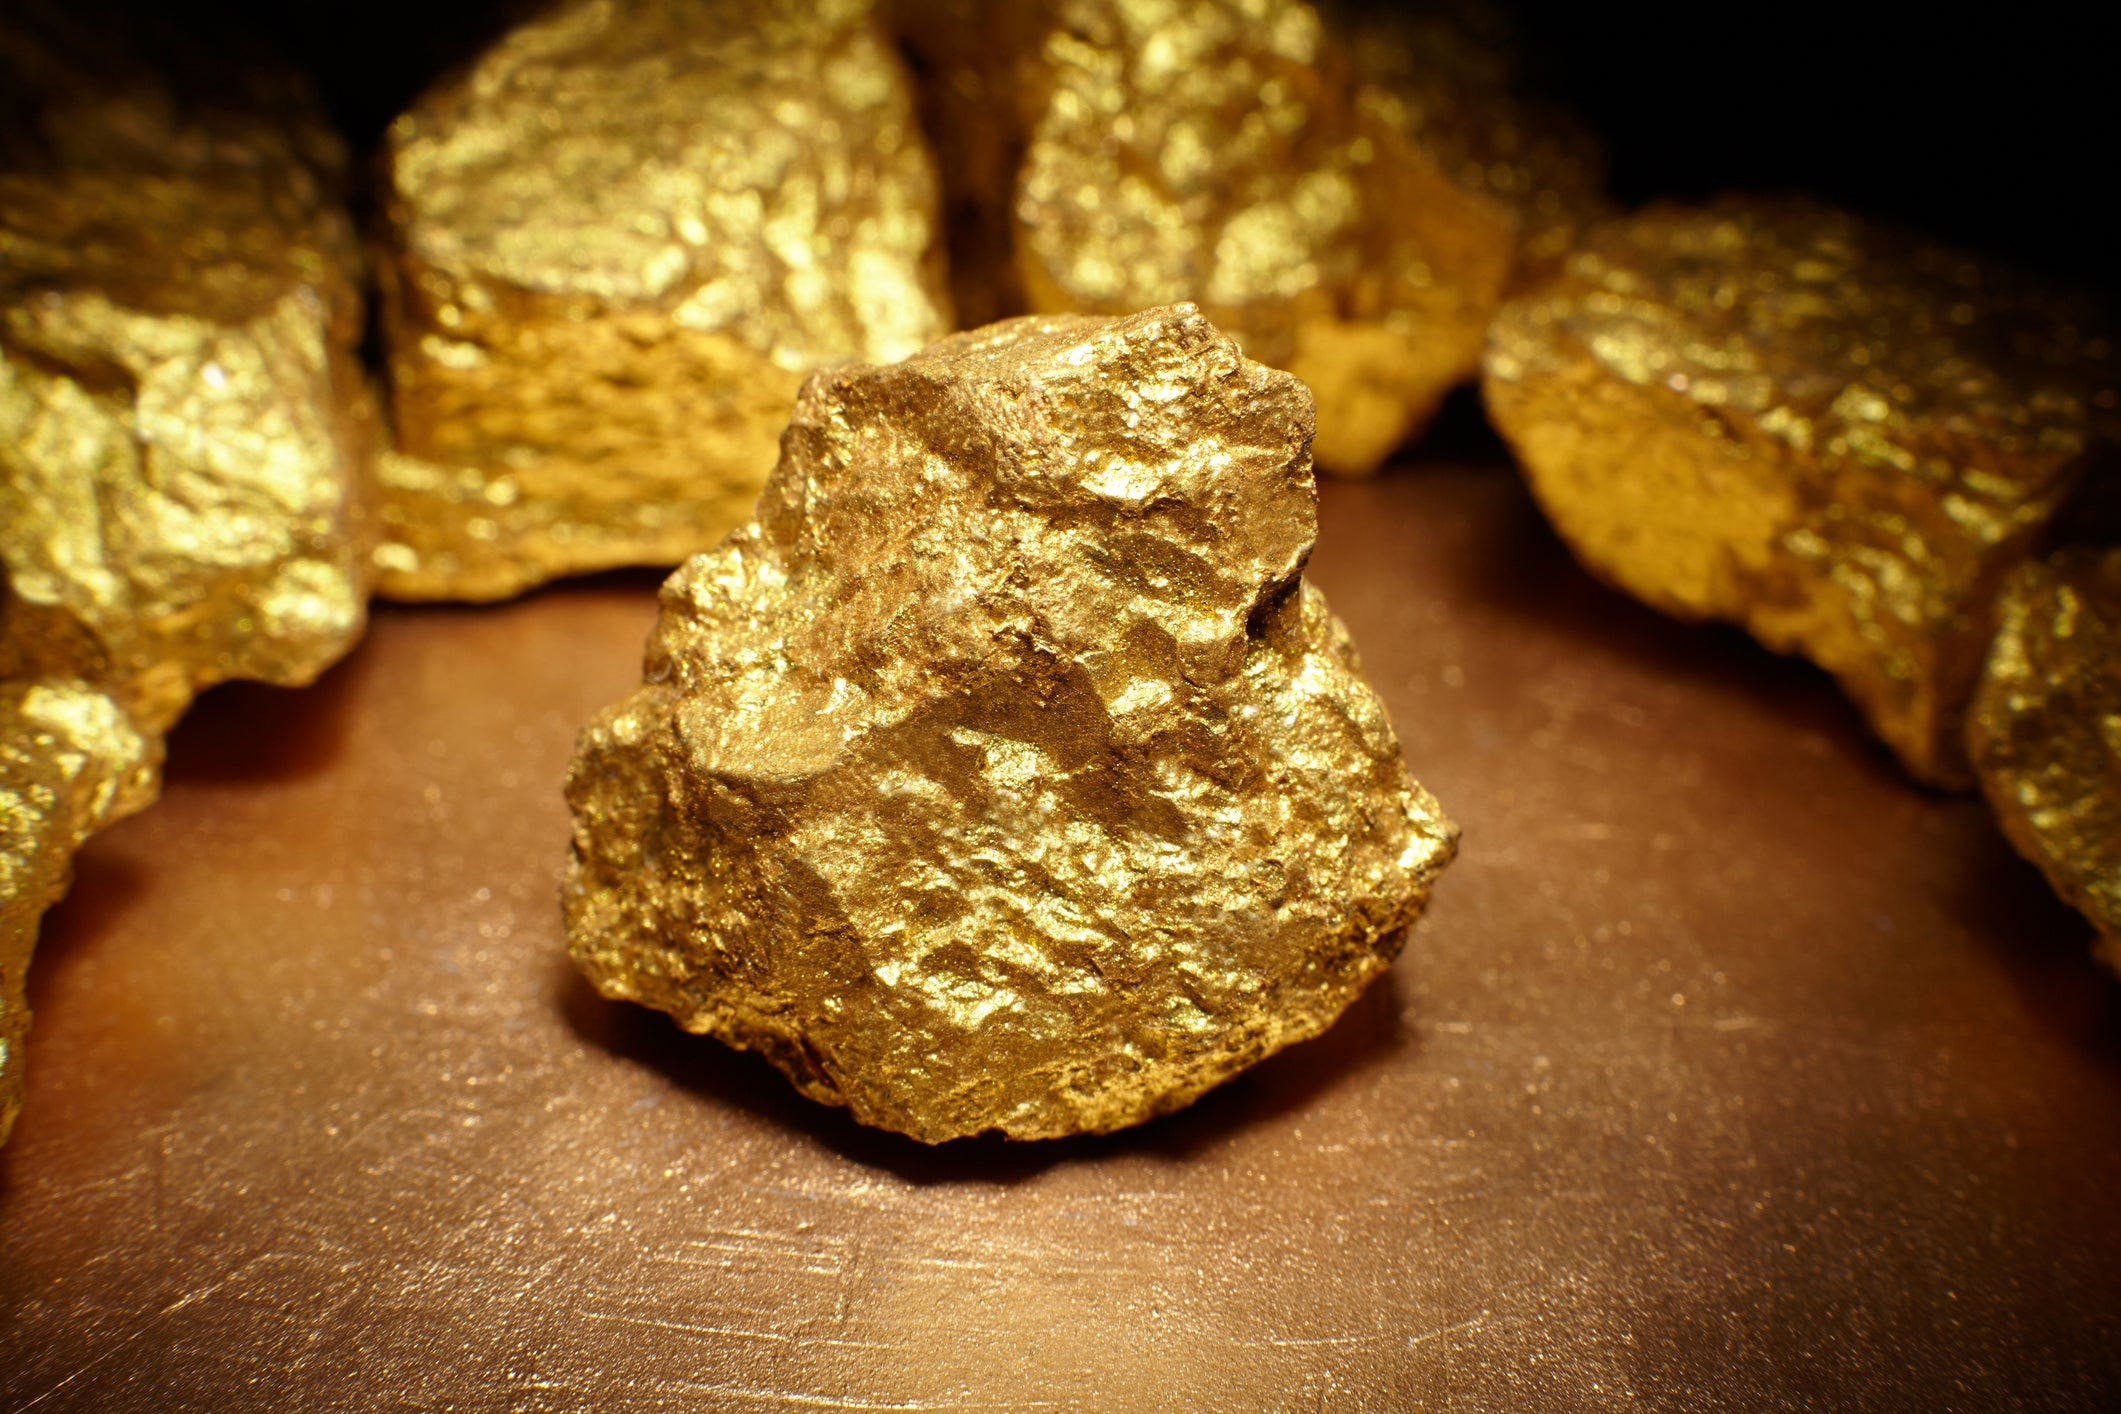 COVID crisis creates golden opportunity for precious metal